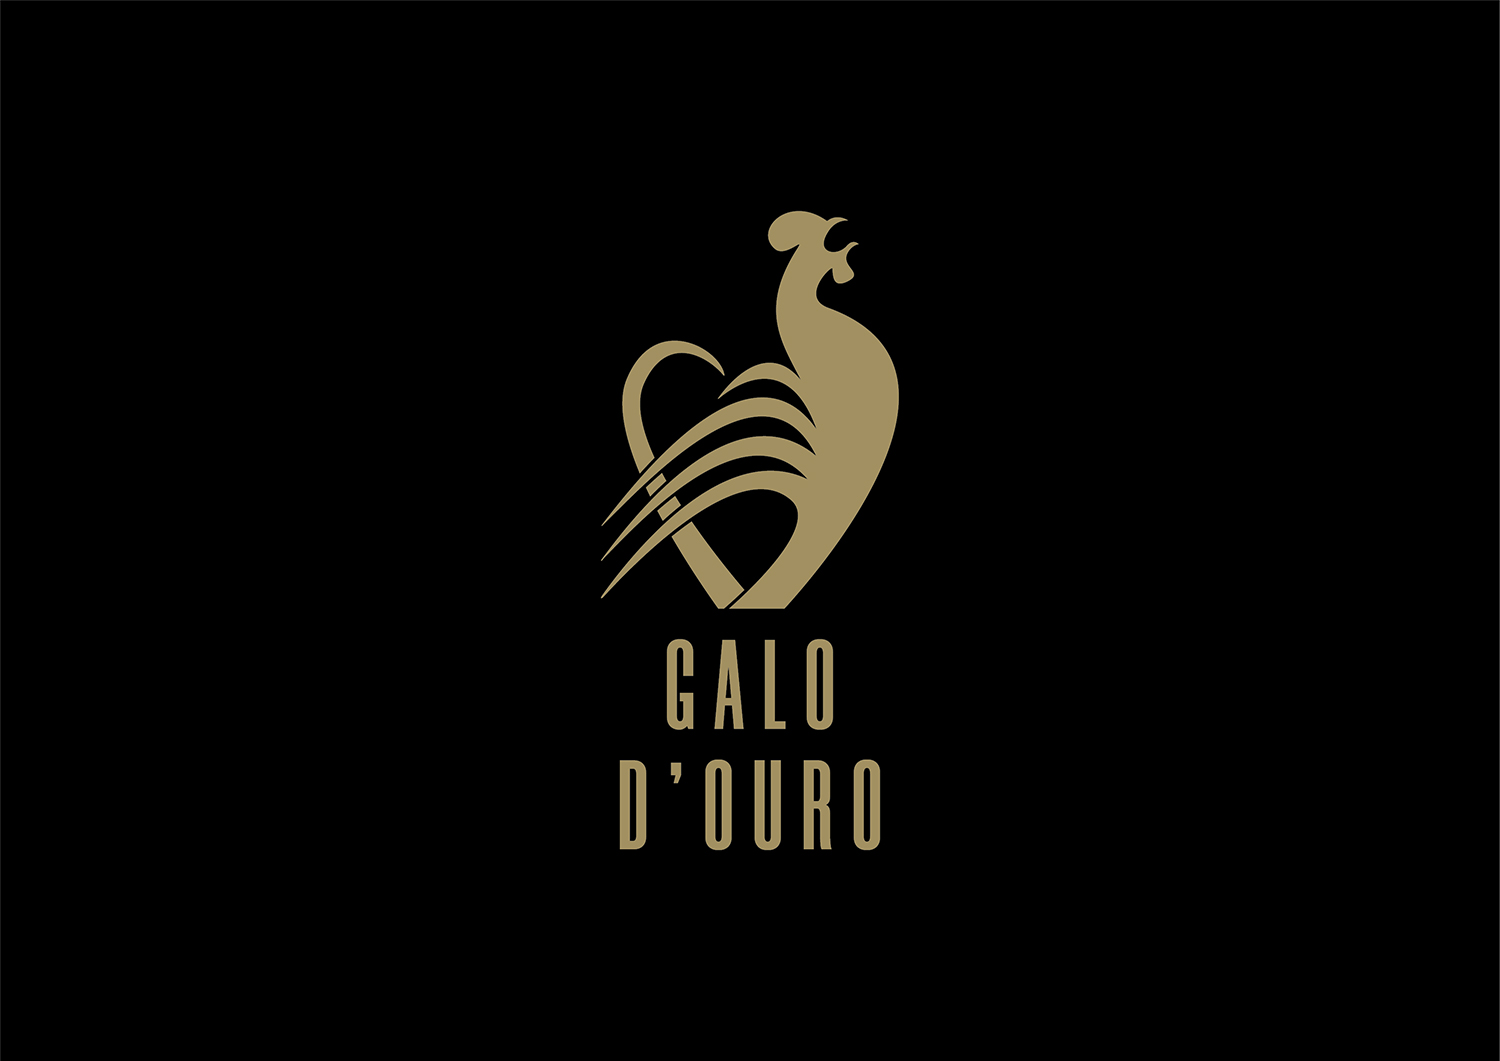 galo-d-ouro-07